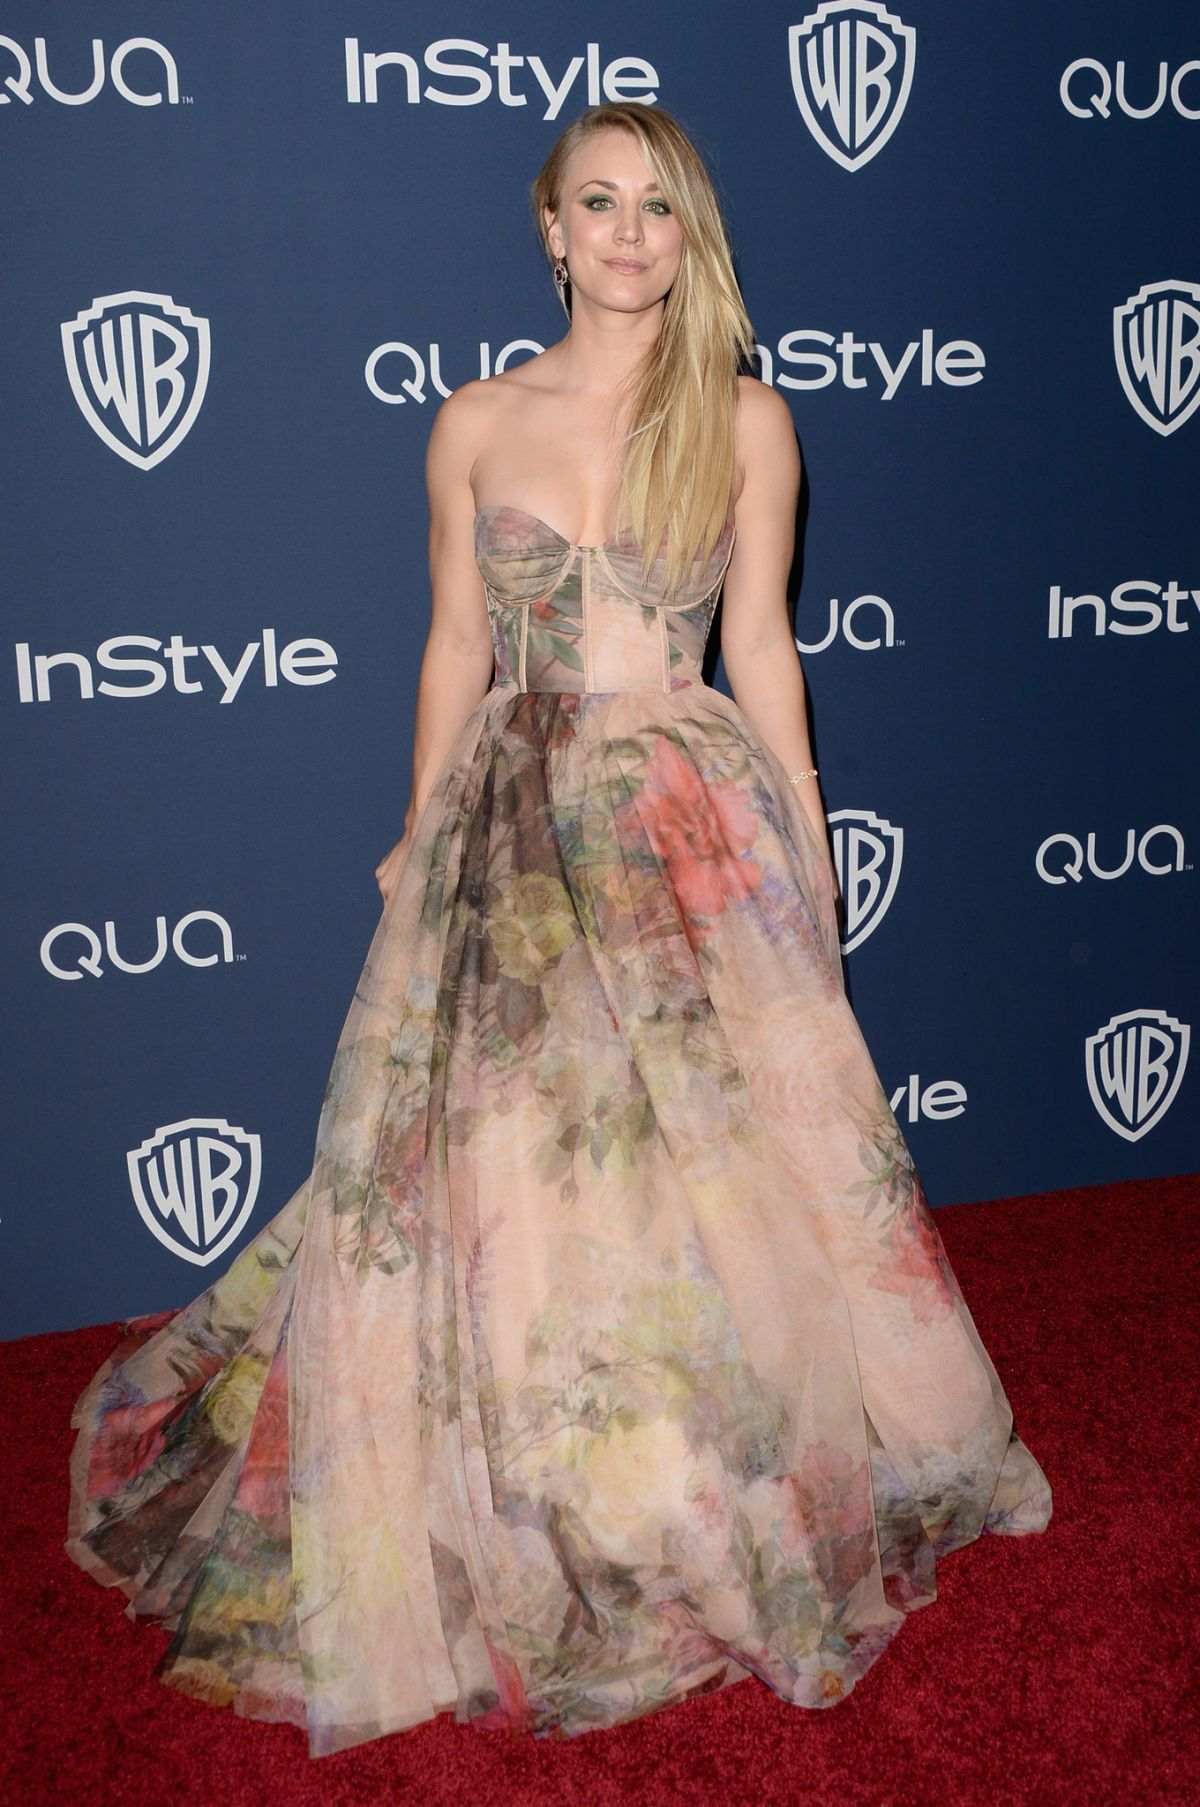 KALEY CUOCO at Instyle and Warner Bros. Golden Globes Afterparty